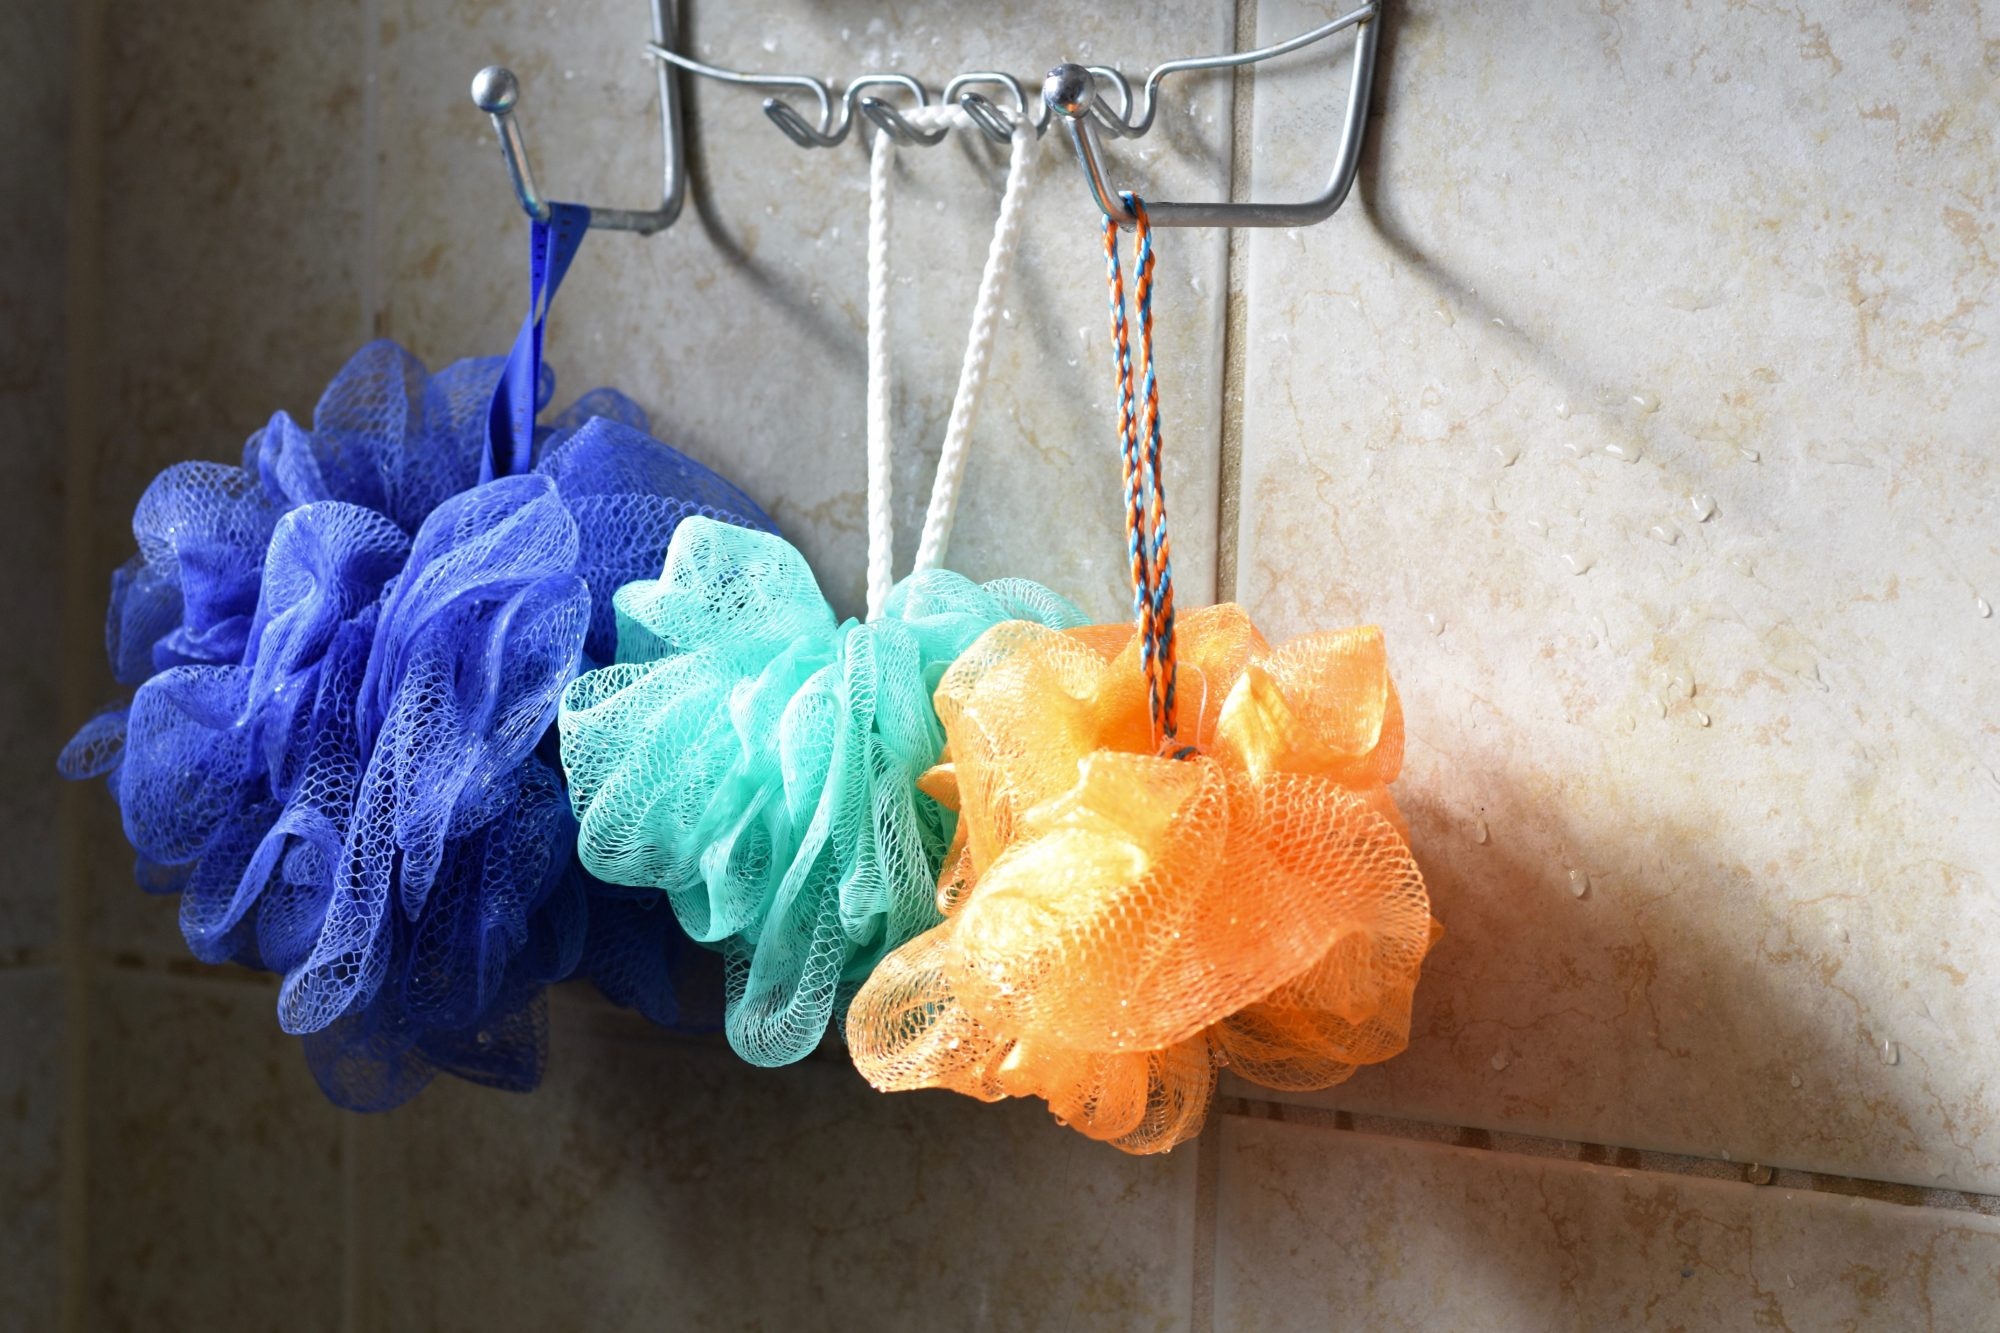 Loofahs in Shower